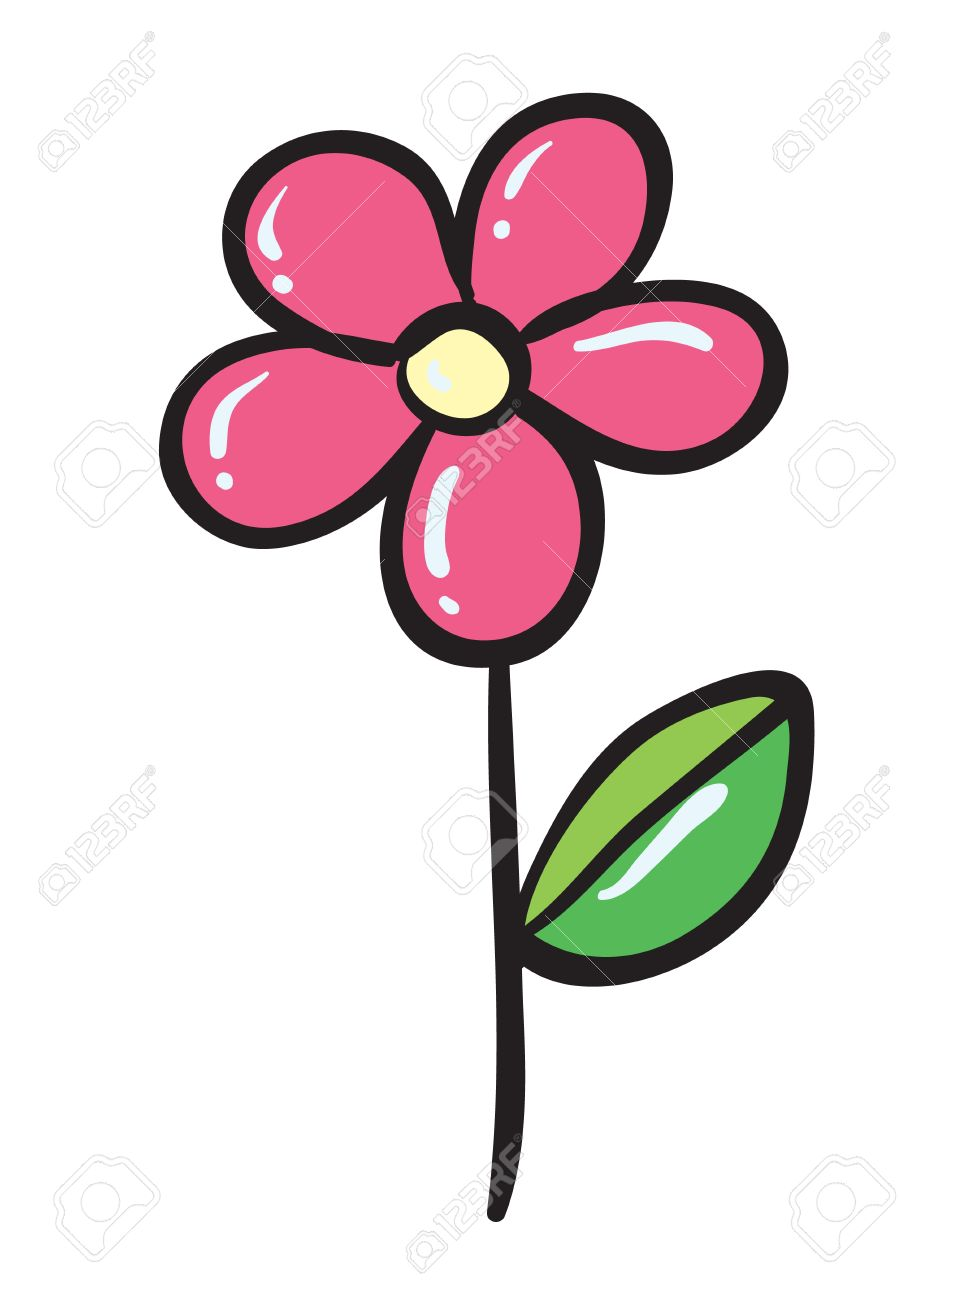 Blume clipart #3, Download drawings